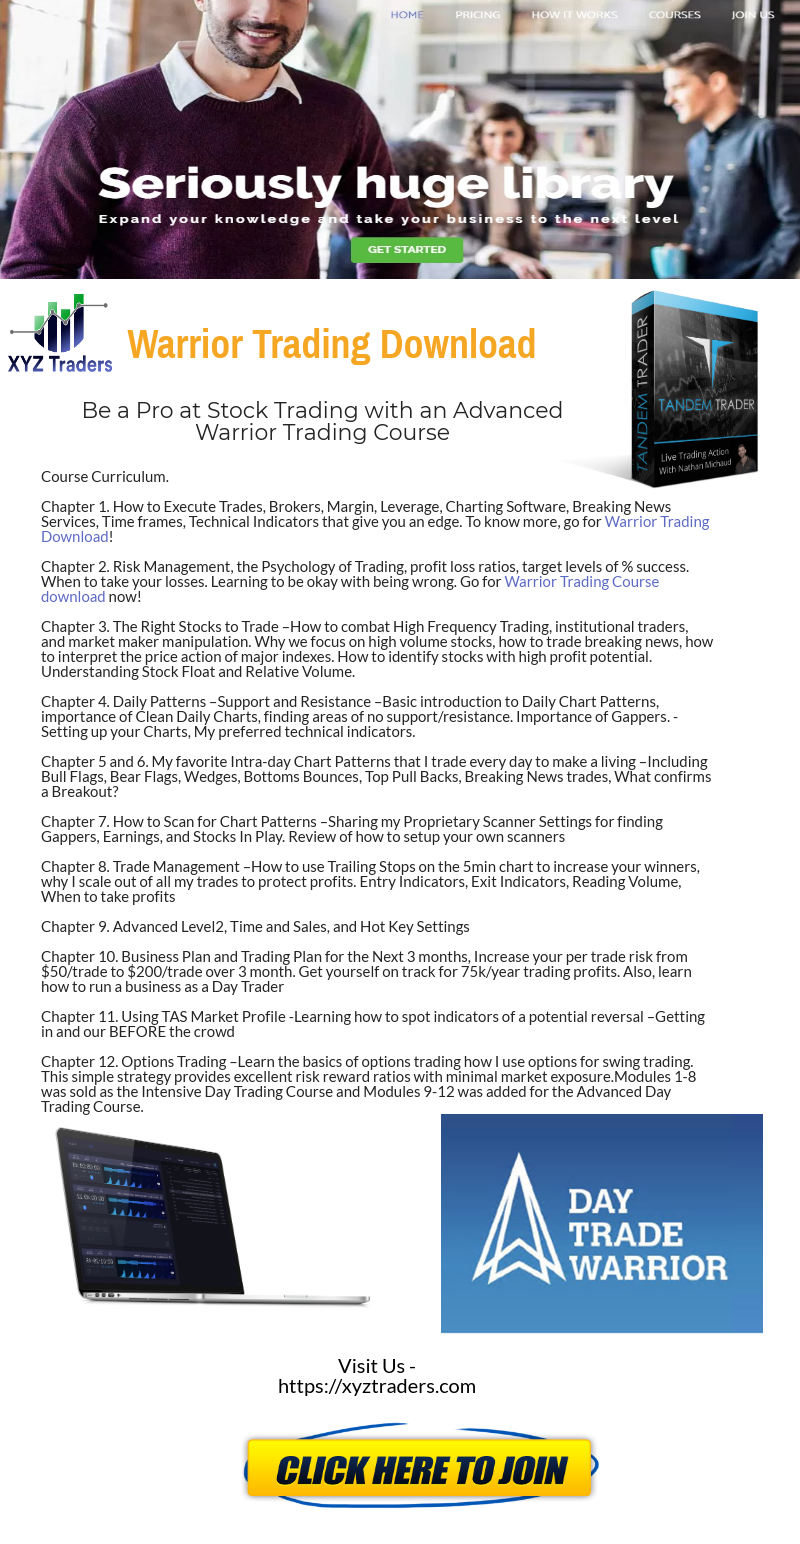 Pin by Xyztraders on Latest Online Trading Courses